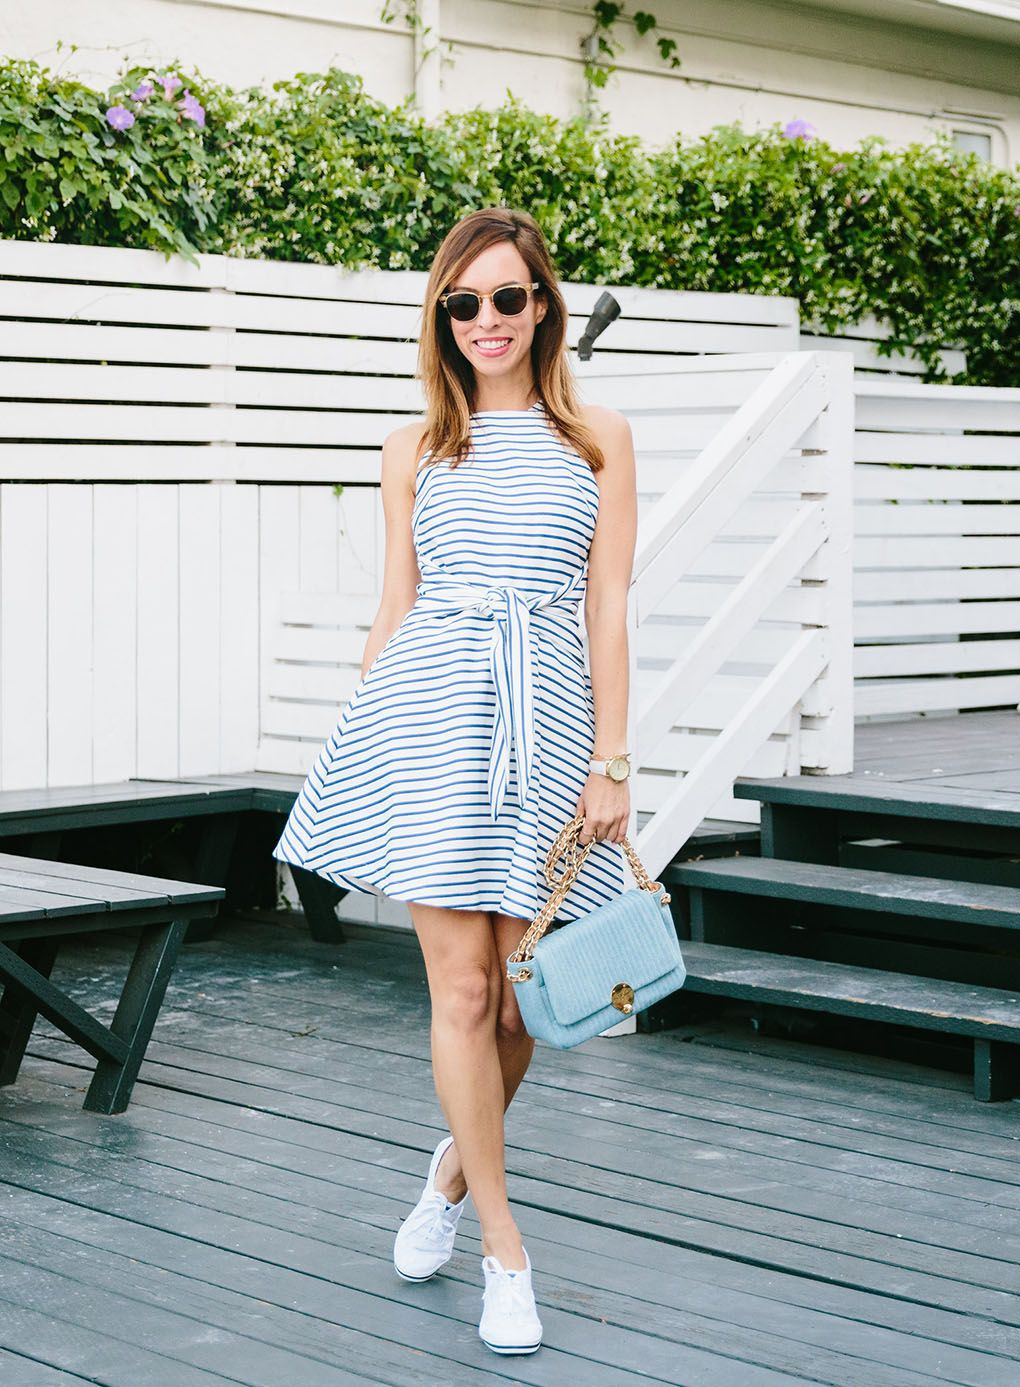 3c59899a7a2 Sydne Style wears Joa tie front striped dress with sneakers for summer style